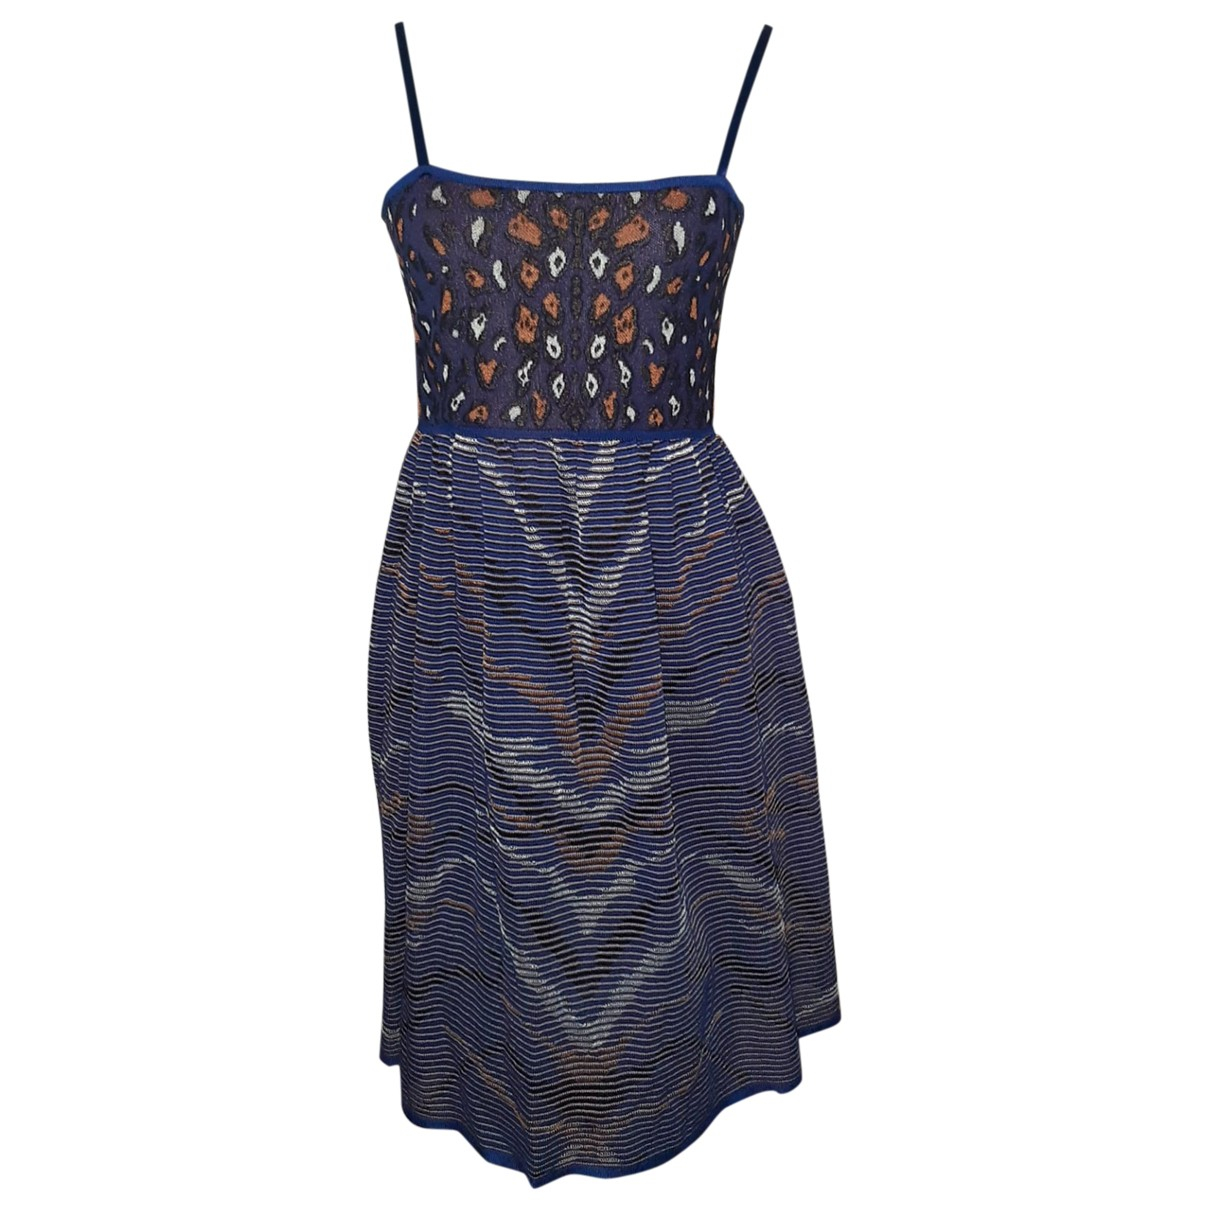 M Missoni \N Kleid in  Blau Viskose